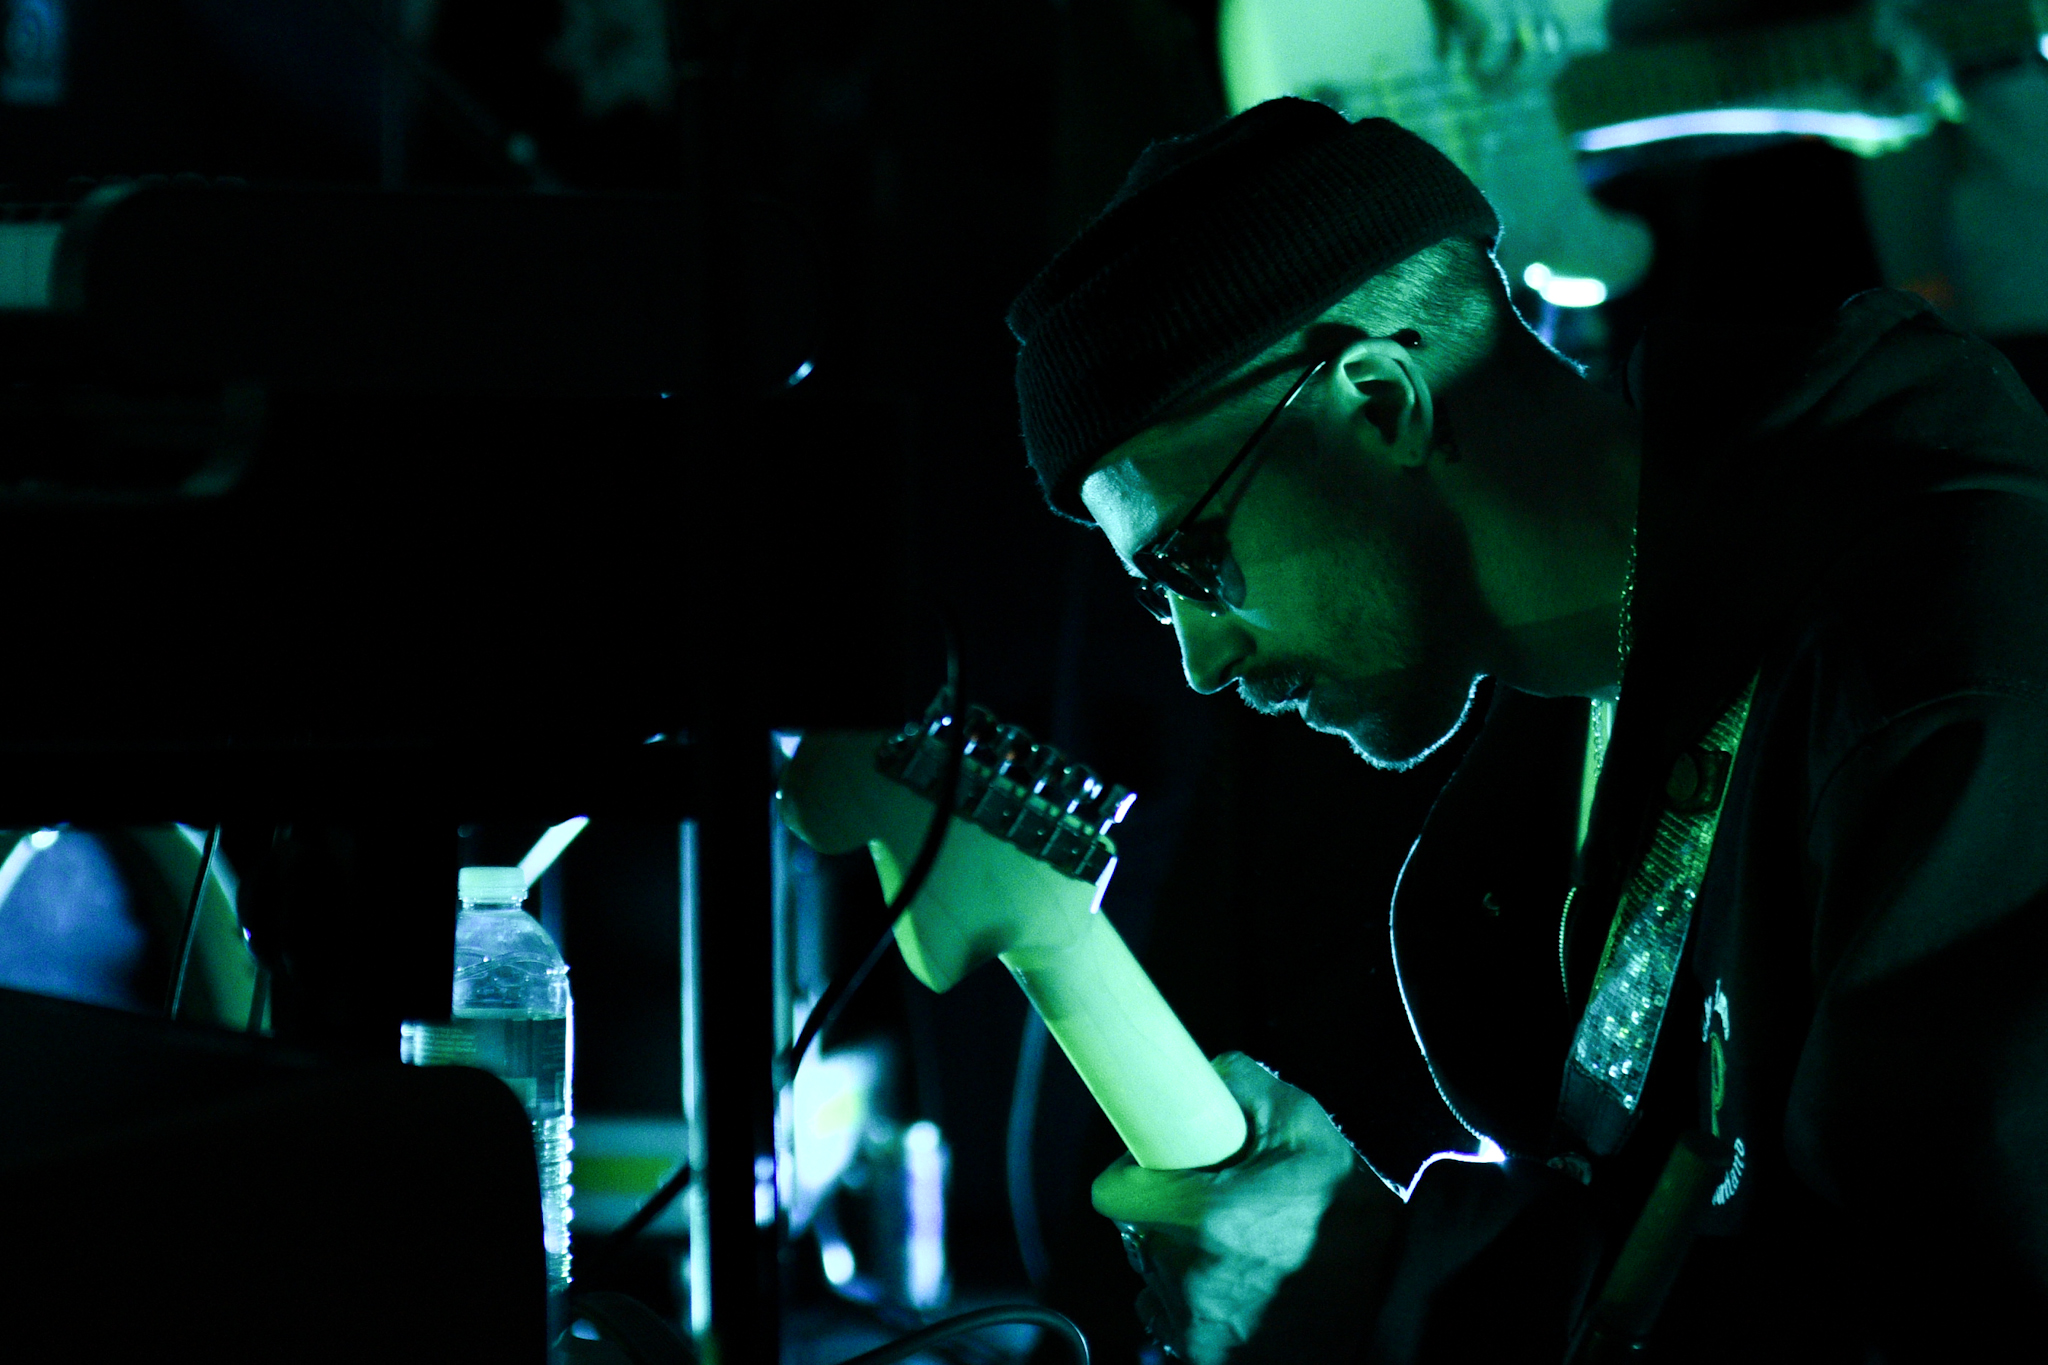 03162018_bruce_mca portugal the man cleon peterson_0049.jpg